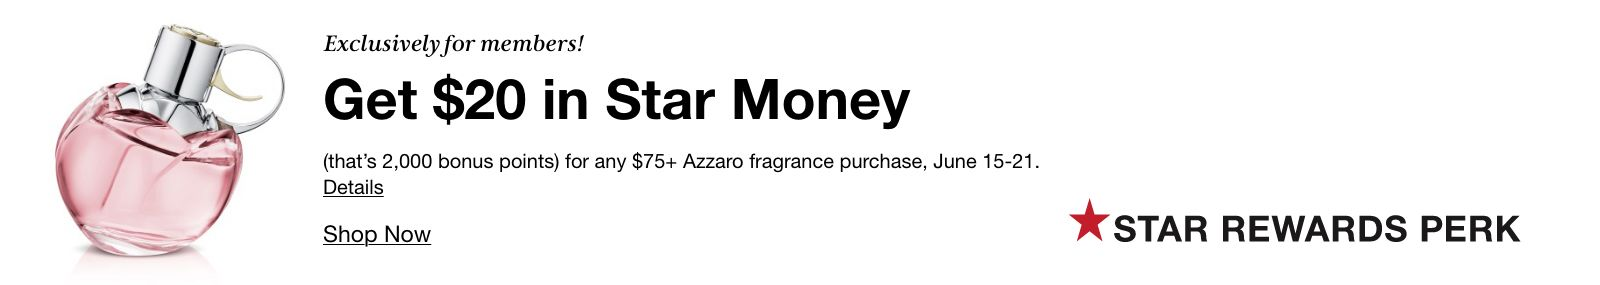 Get $20 in Star Money (that's 2,000 bonus points) for any $75+ Azzaro fragrance purchase